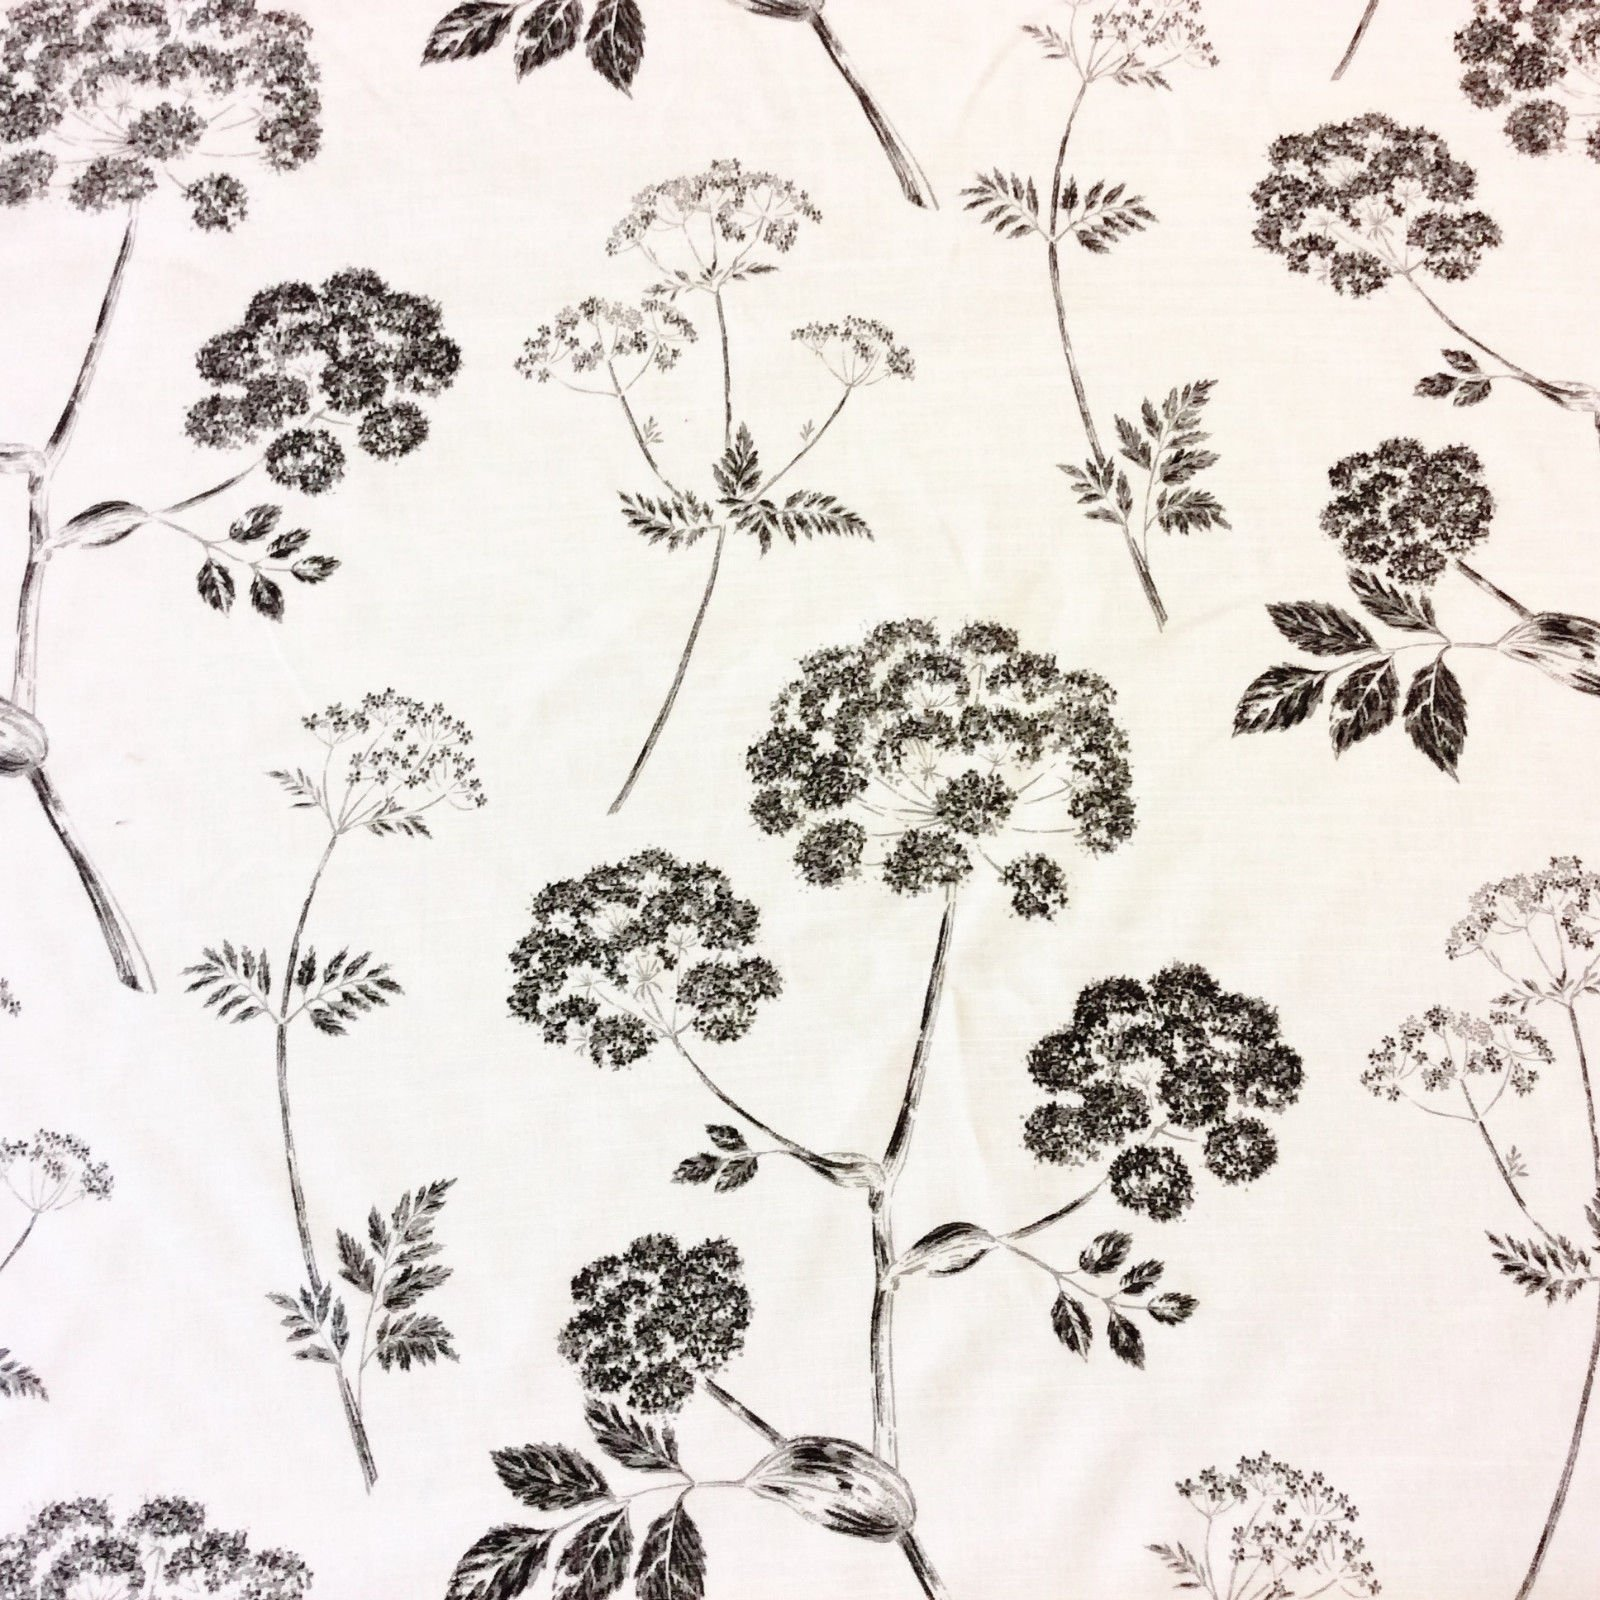 Beacon Hill Linen Kemsley Ramm Fabric Trees and Leaves Silhouette Linen Fabric Drapery Fabric WB03